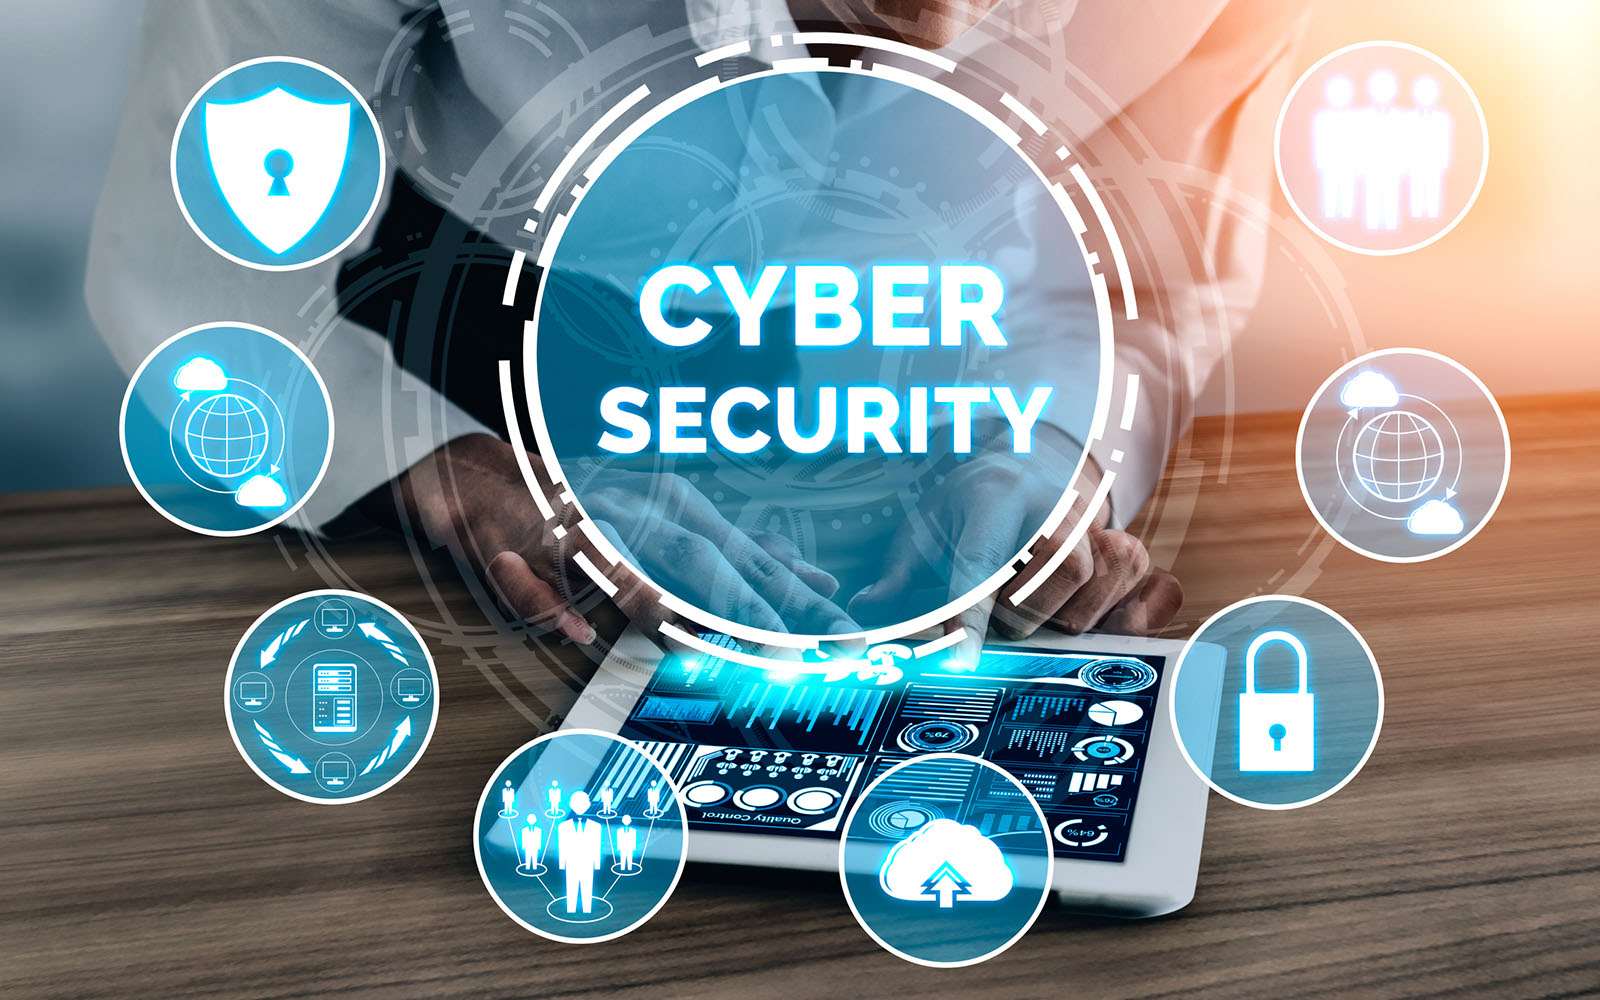 10 Ways to Improve Cybersecurity for Your Business